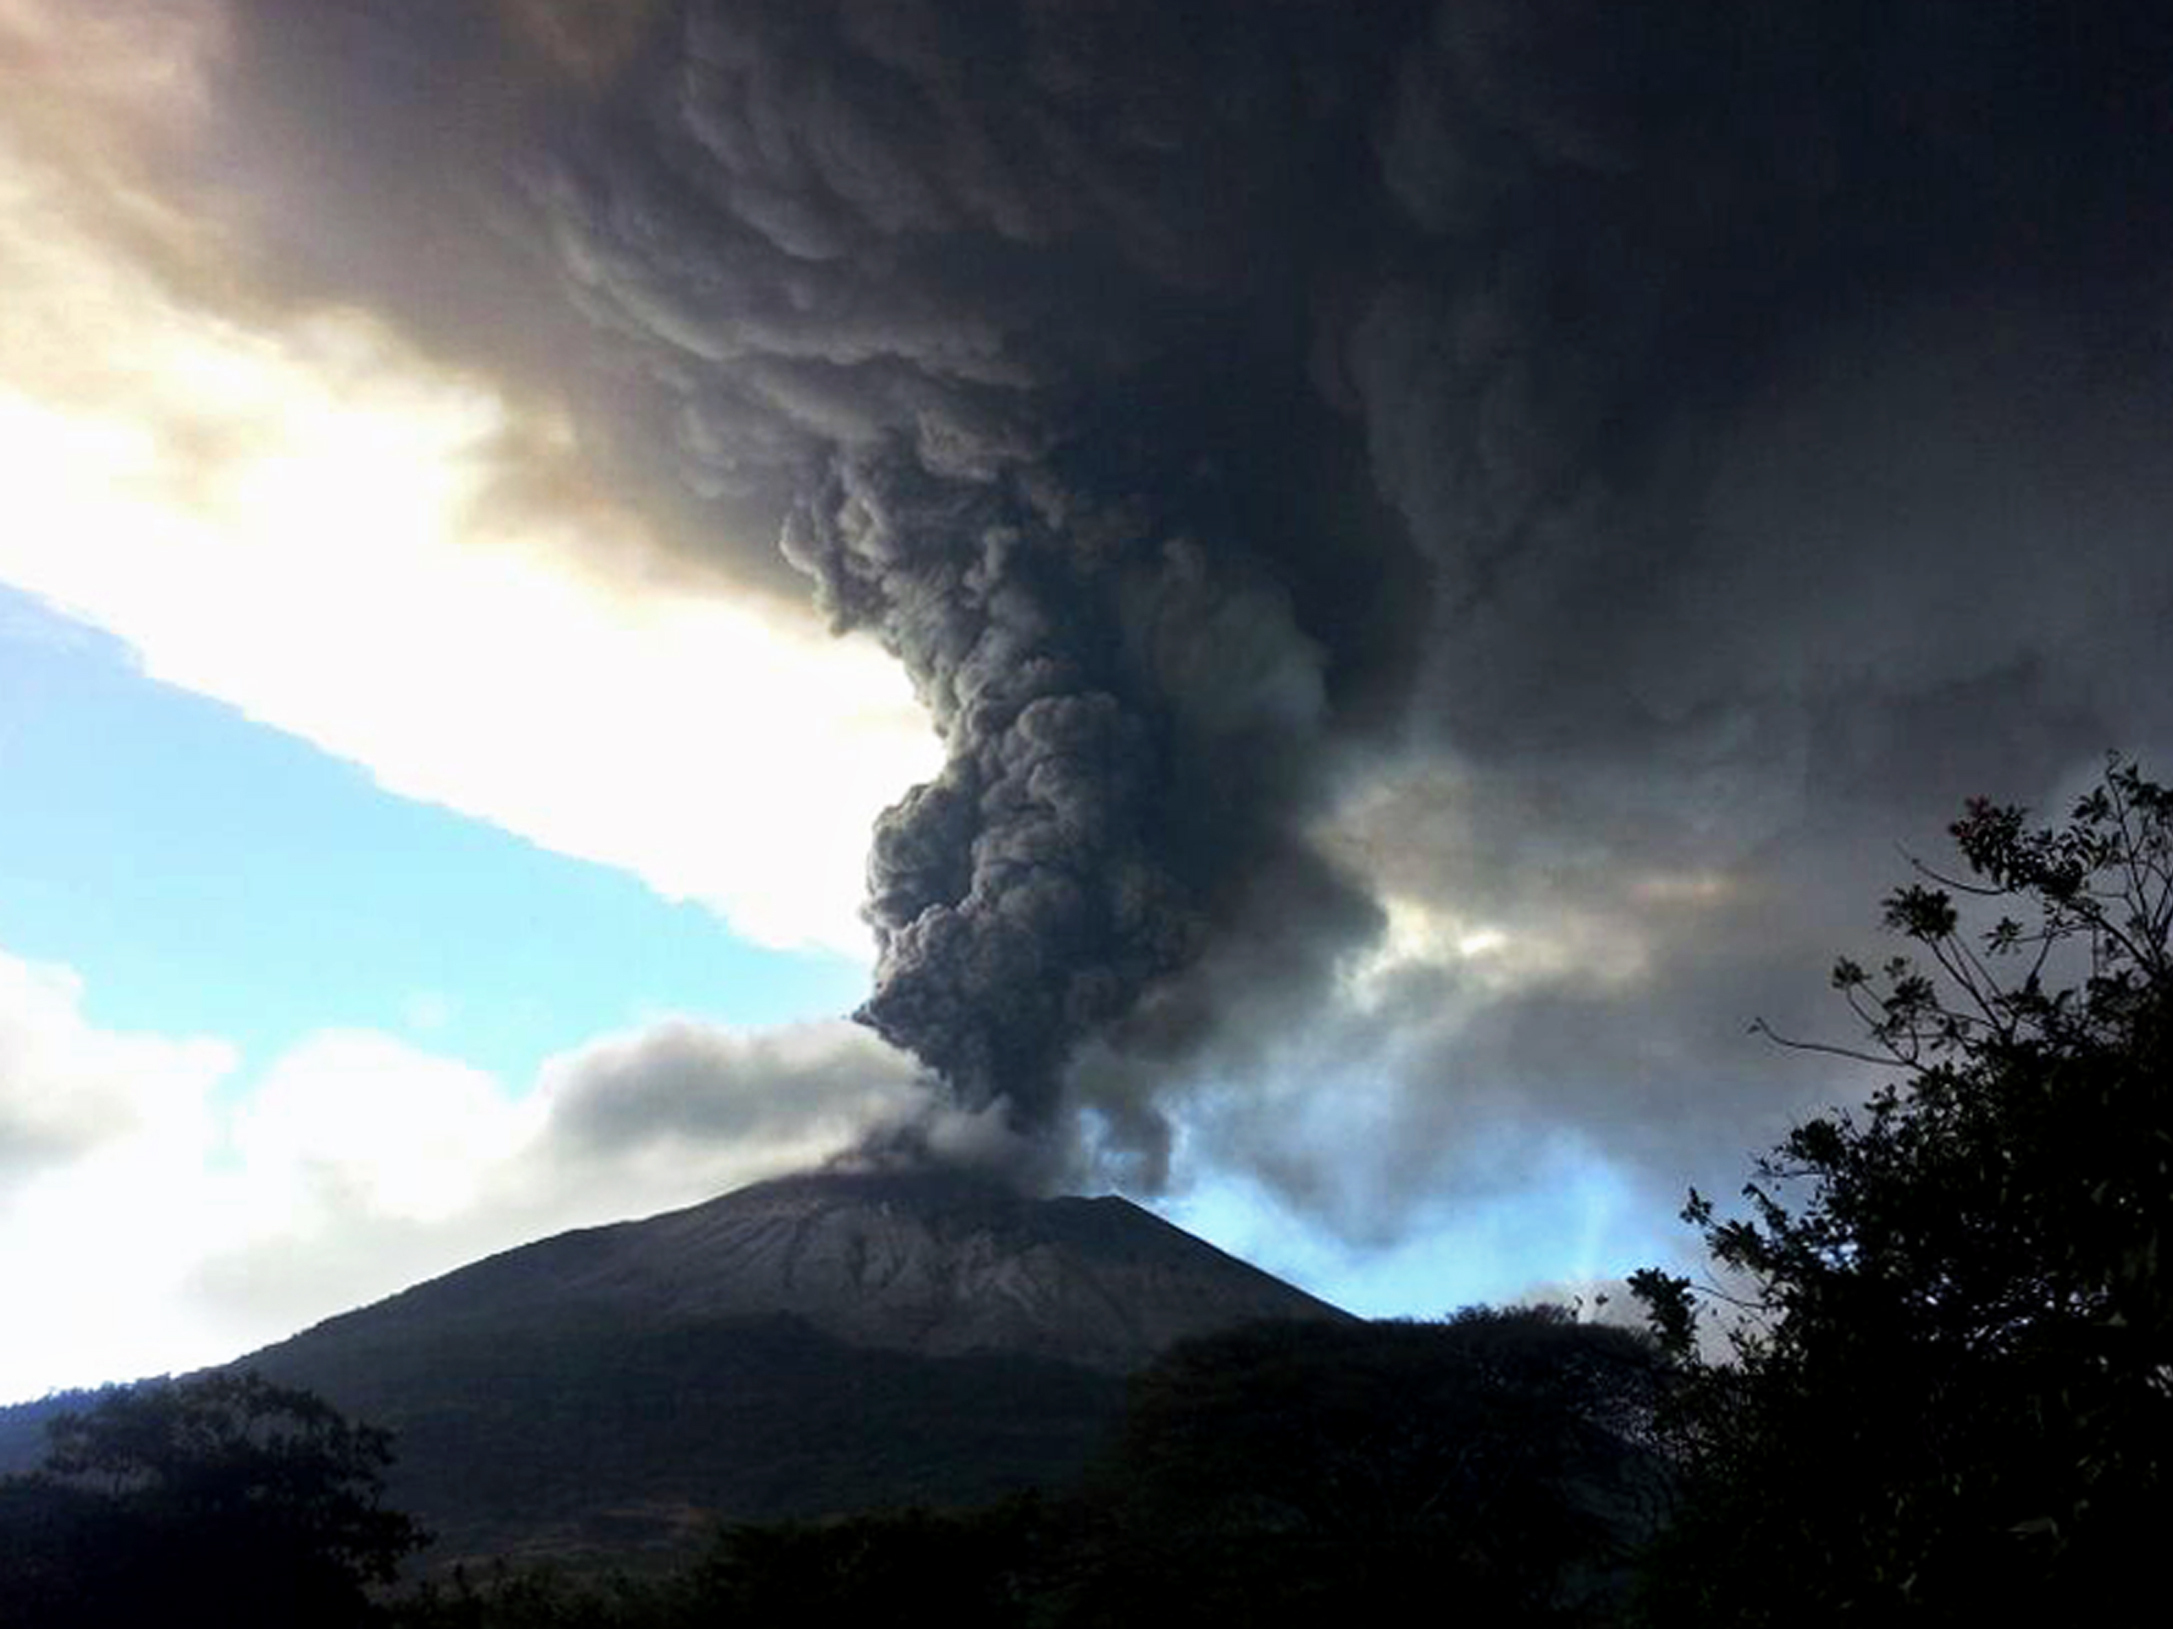 VIDEO: Volcano Erupts In El Salvador, Ash And Gas Soar